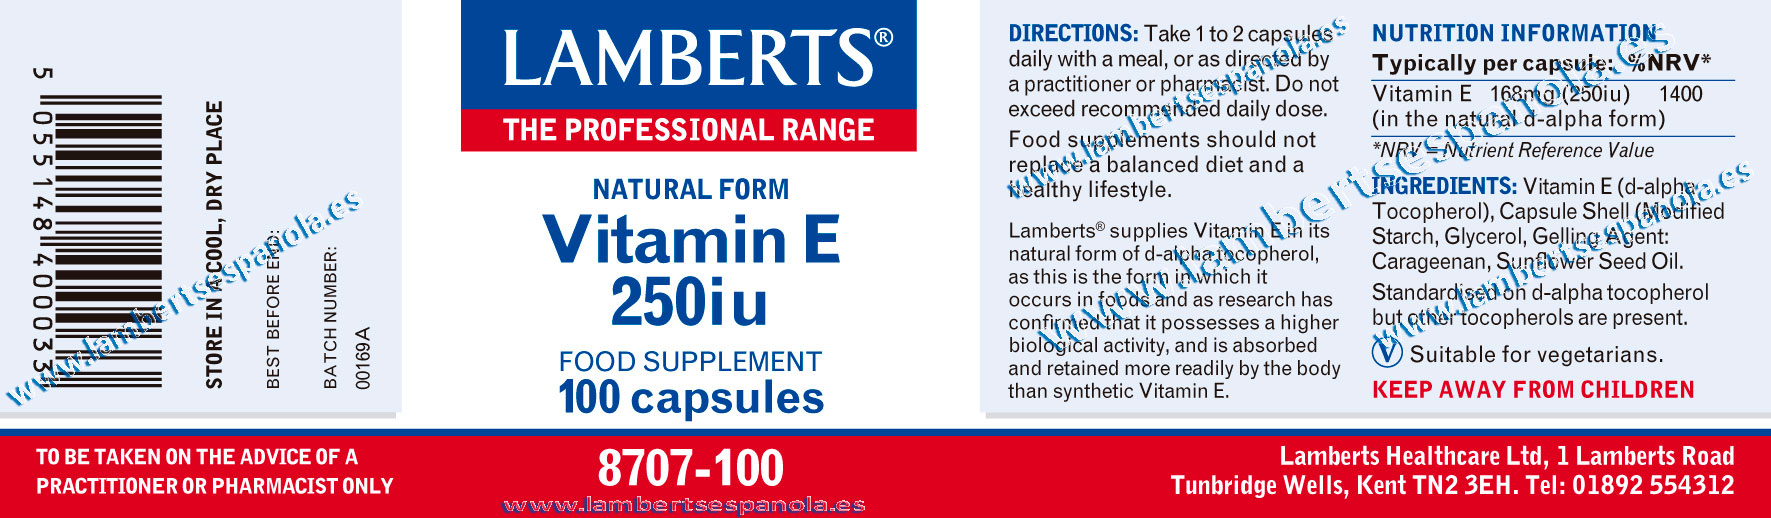 Vitamin E 250 ui properties